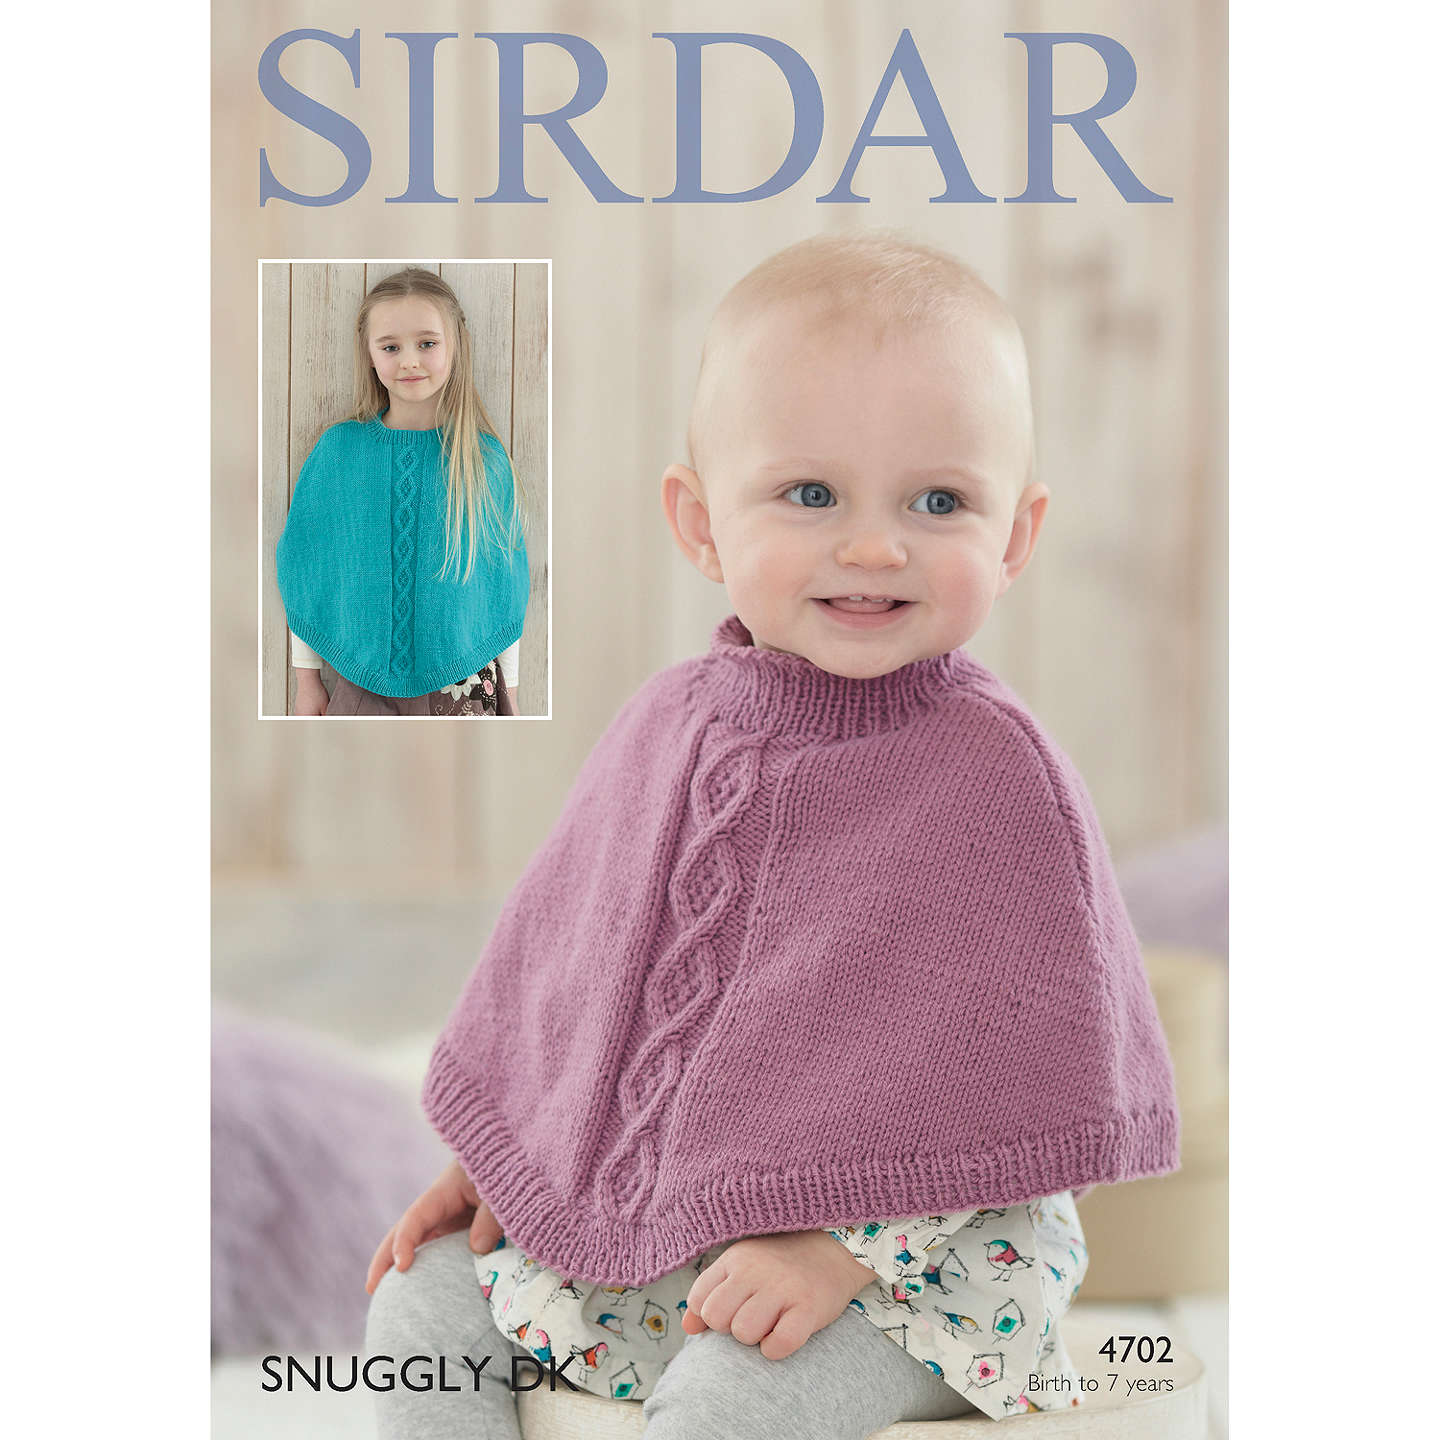 Sirdar Snuggly DK Children\'s Poncho Knitting Paper Pattern, 4702 at ...